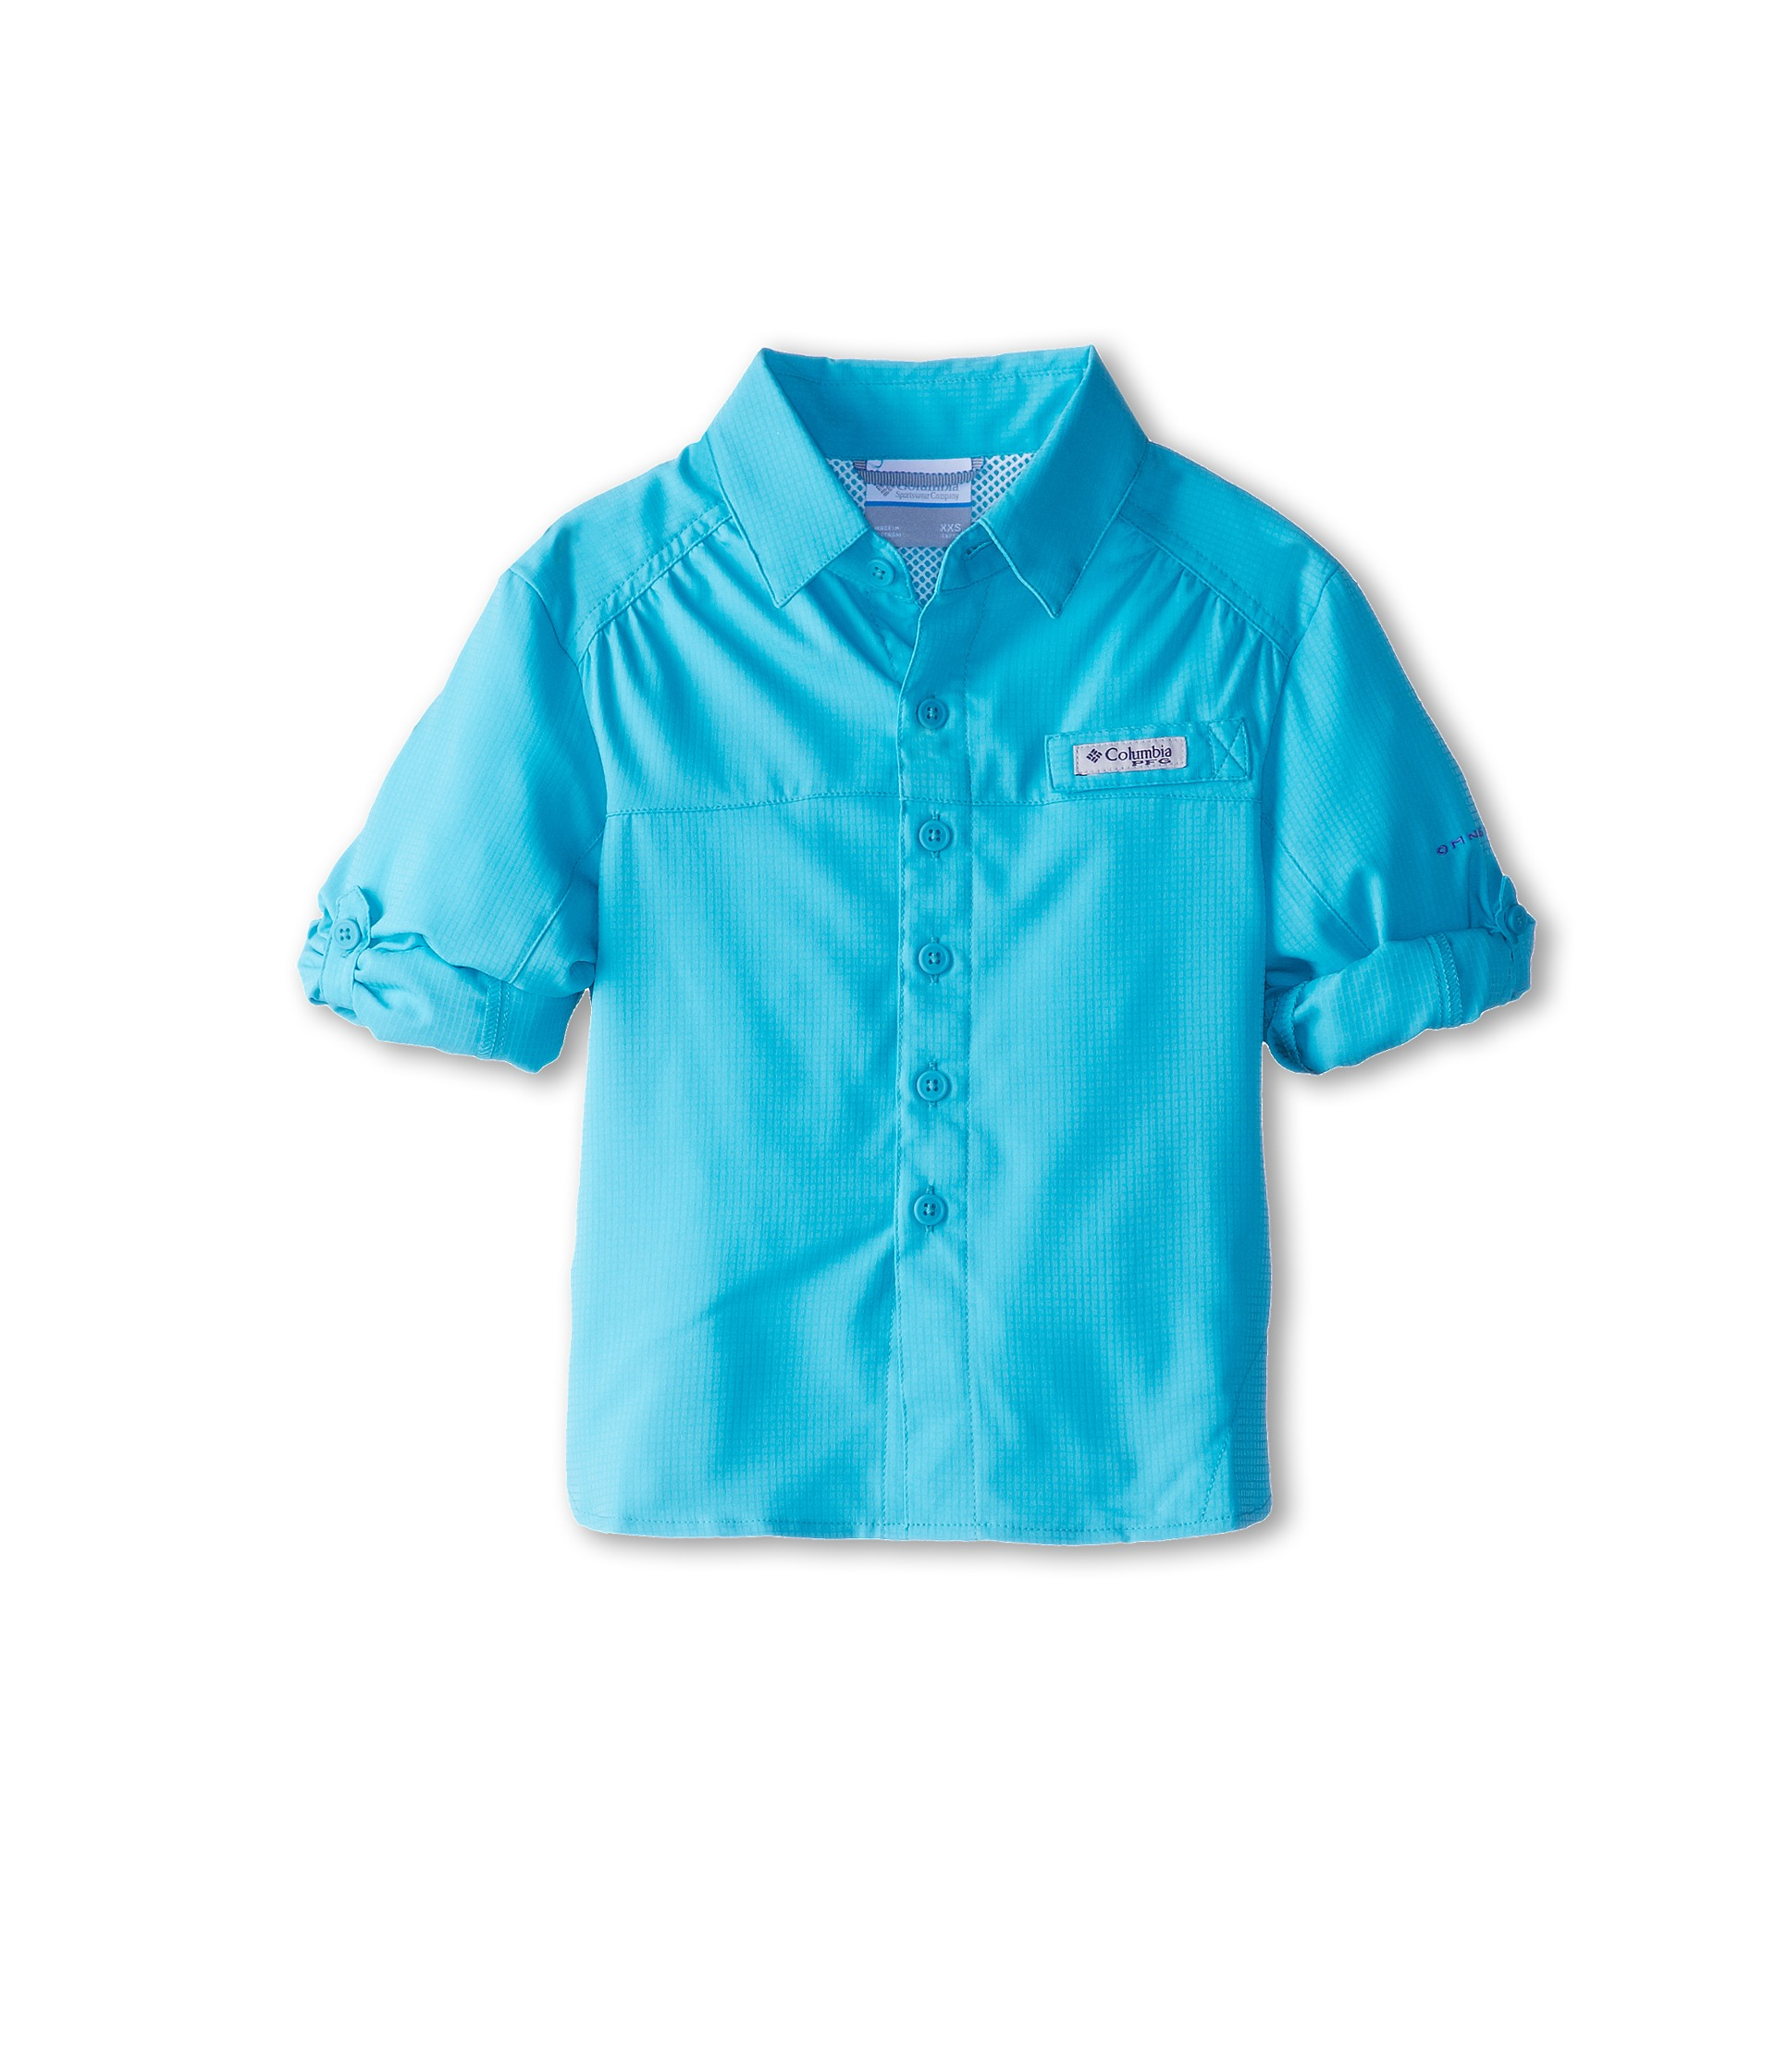 Columbia kids tamiami l s shirt little kids big kids for Baby fishing shirts columbia